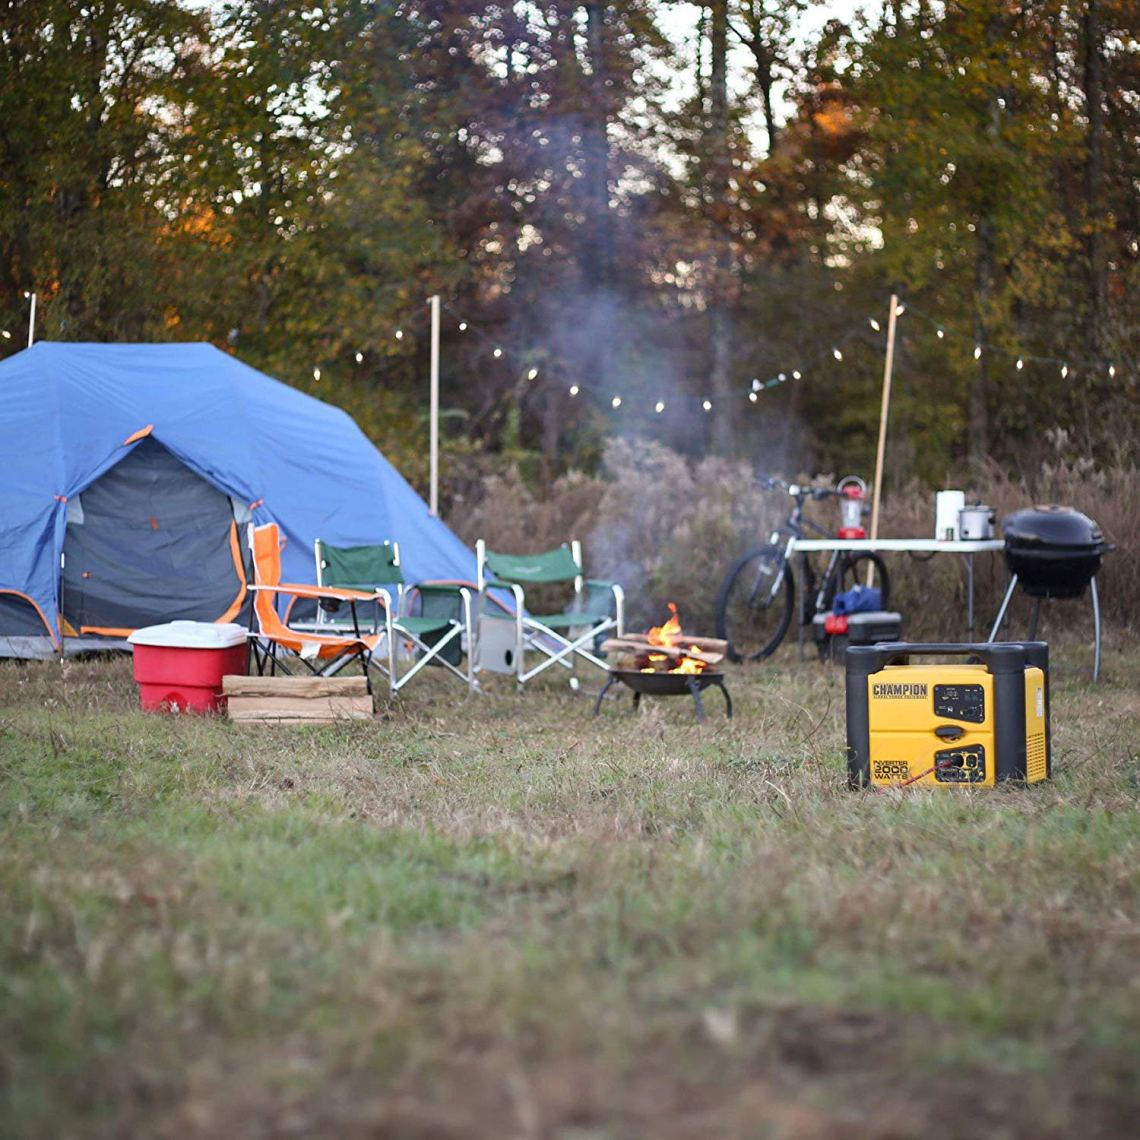 a camping generator set up at a campsite near chairs and tents plugged into lights